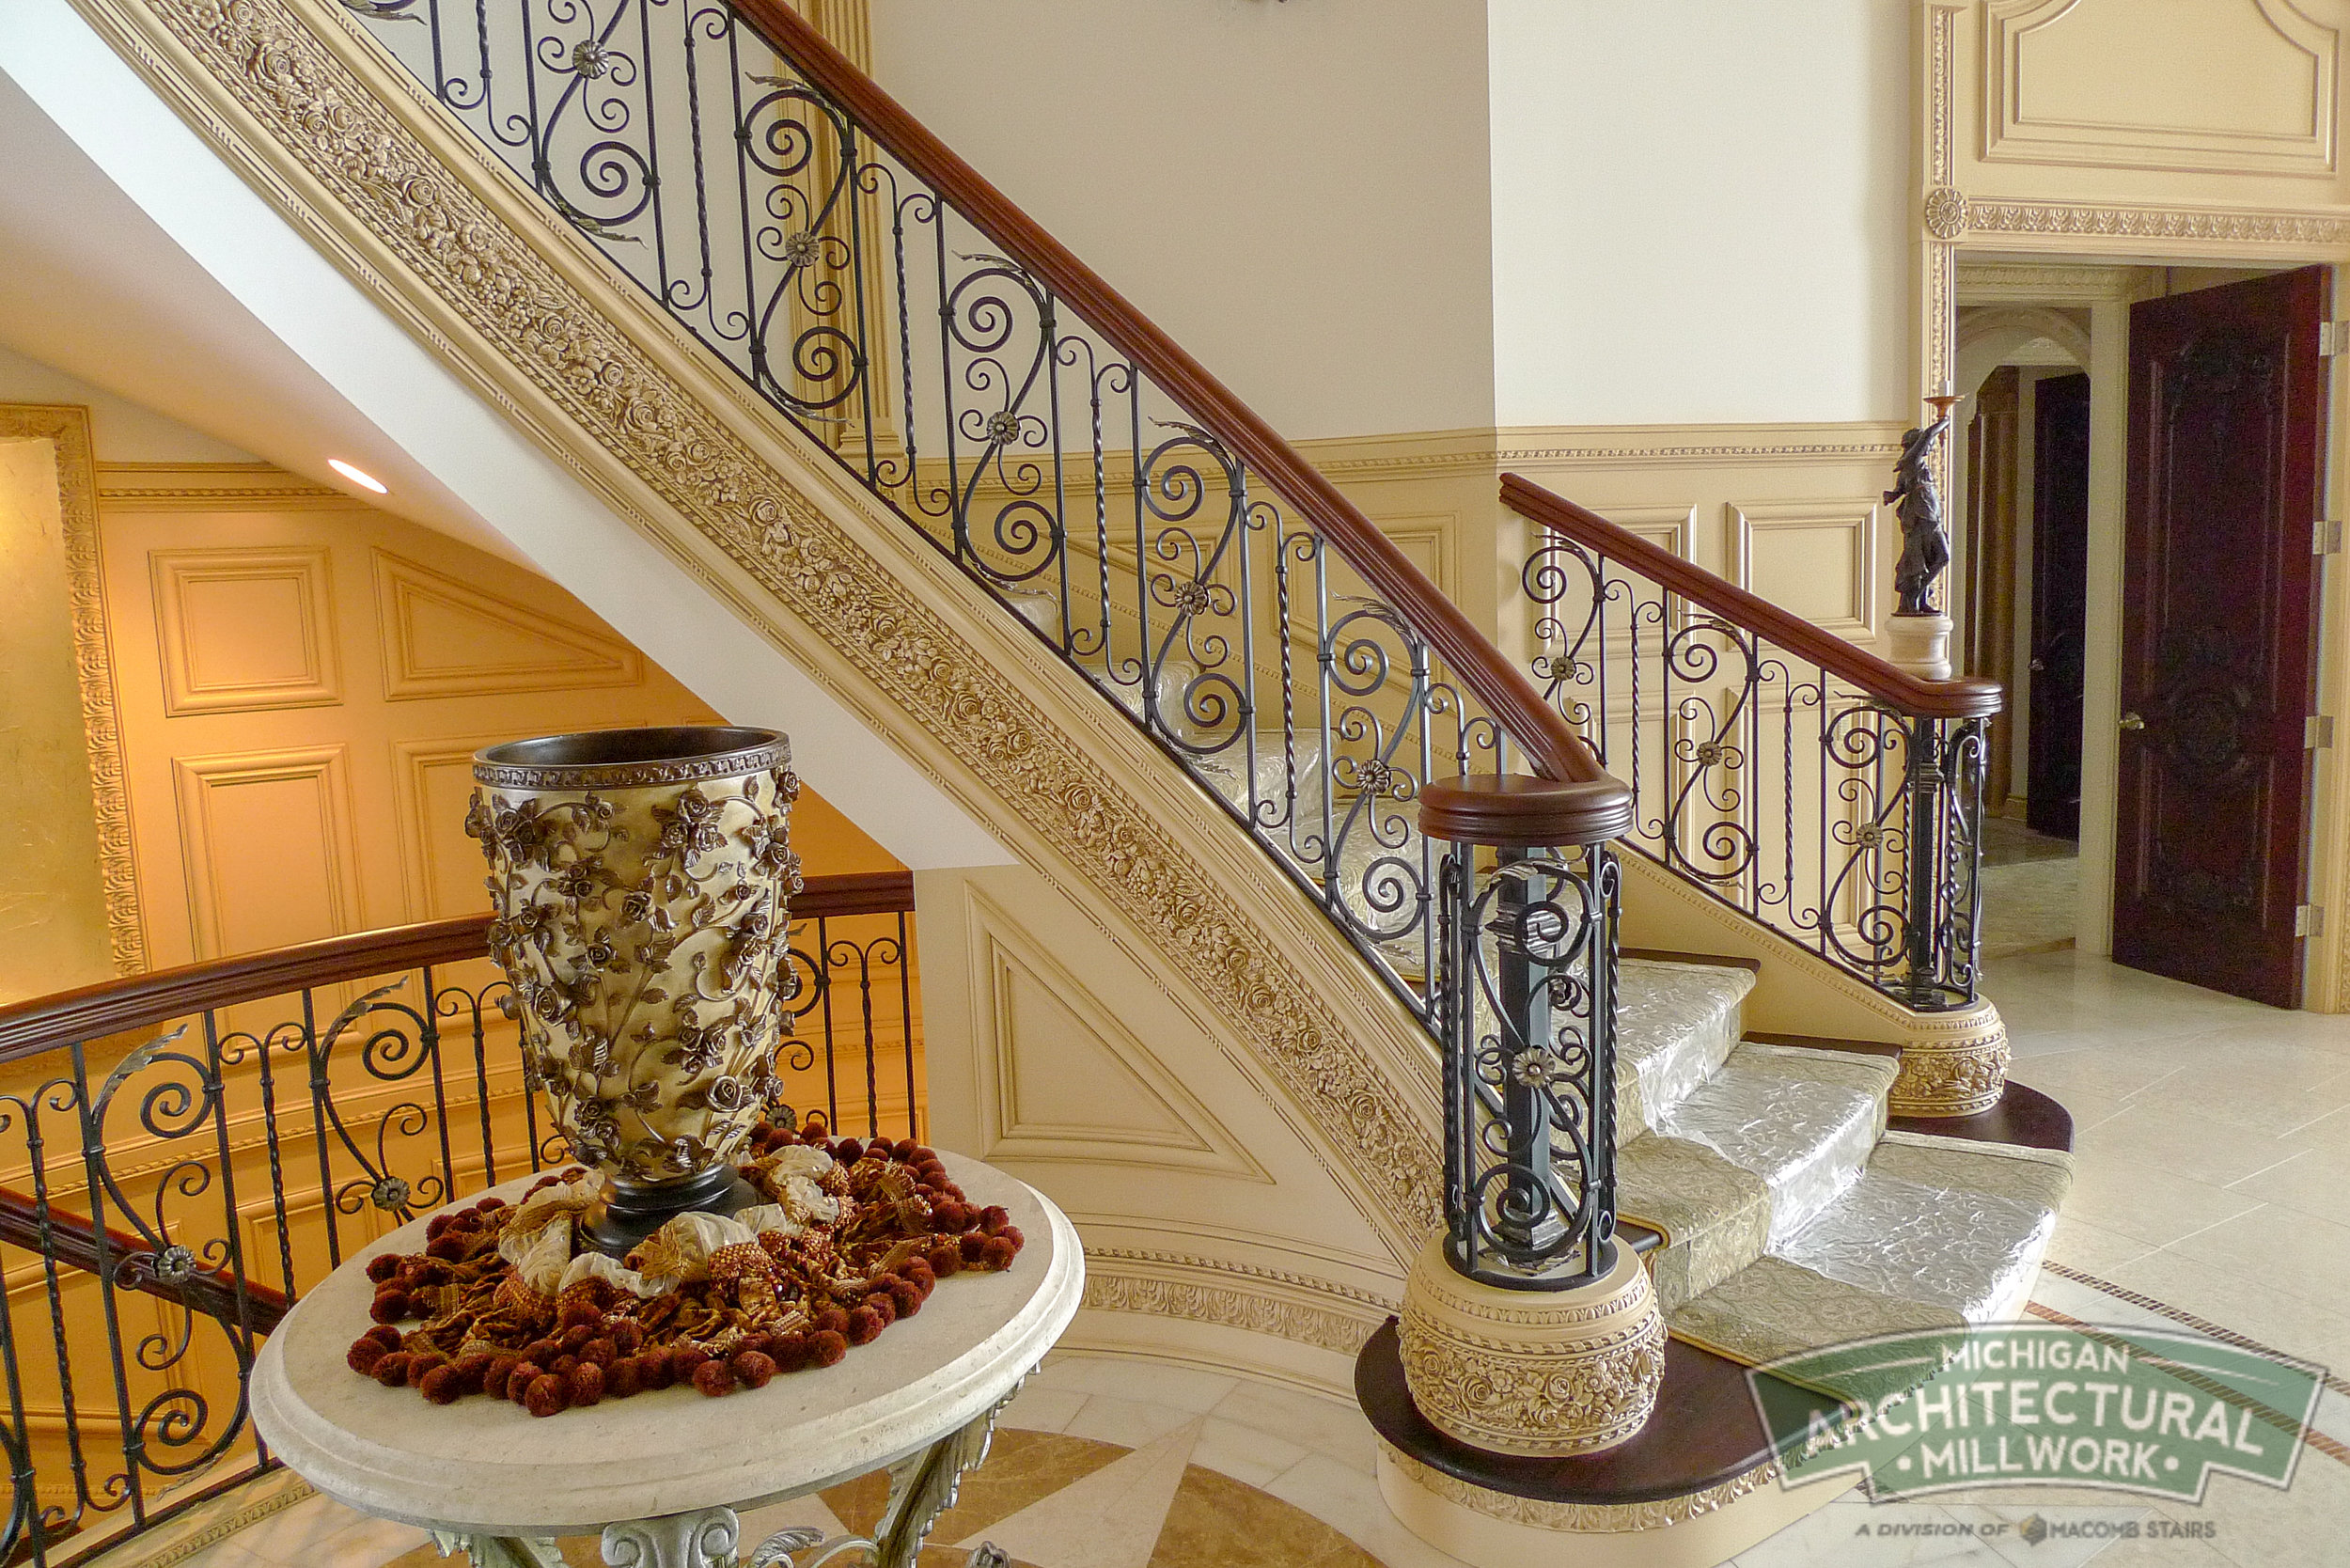 Michigan Architectural Millwork- Moulding and Millwork Photo-140.jpg